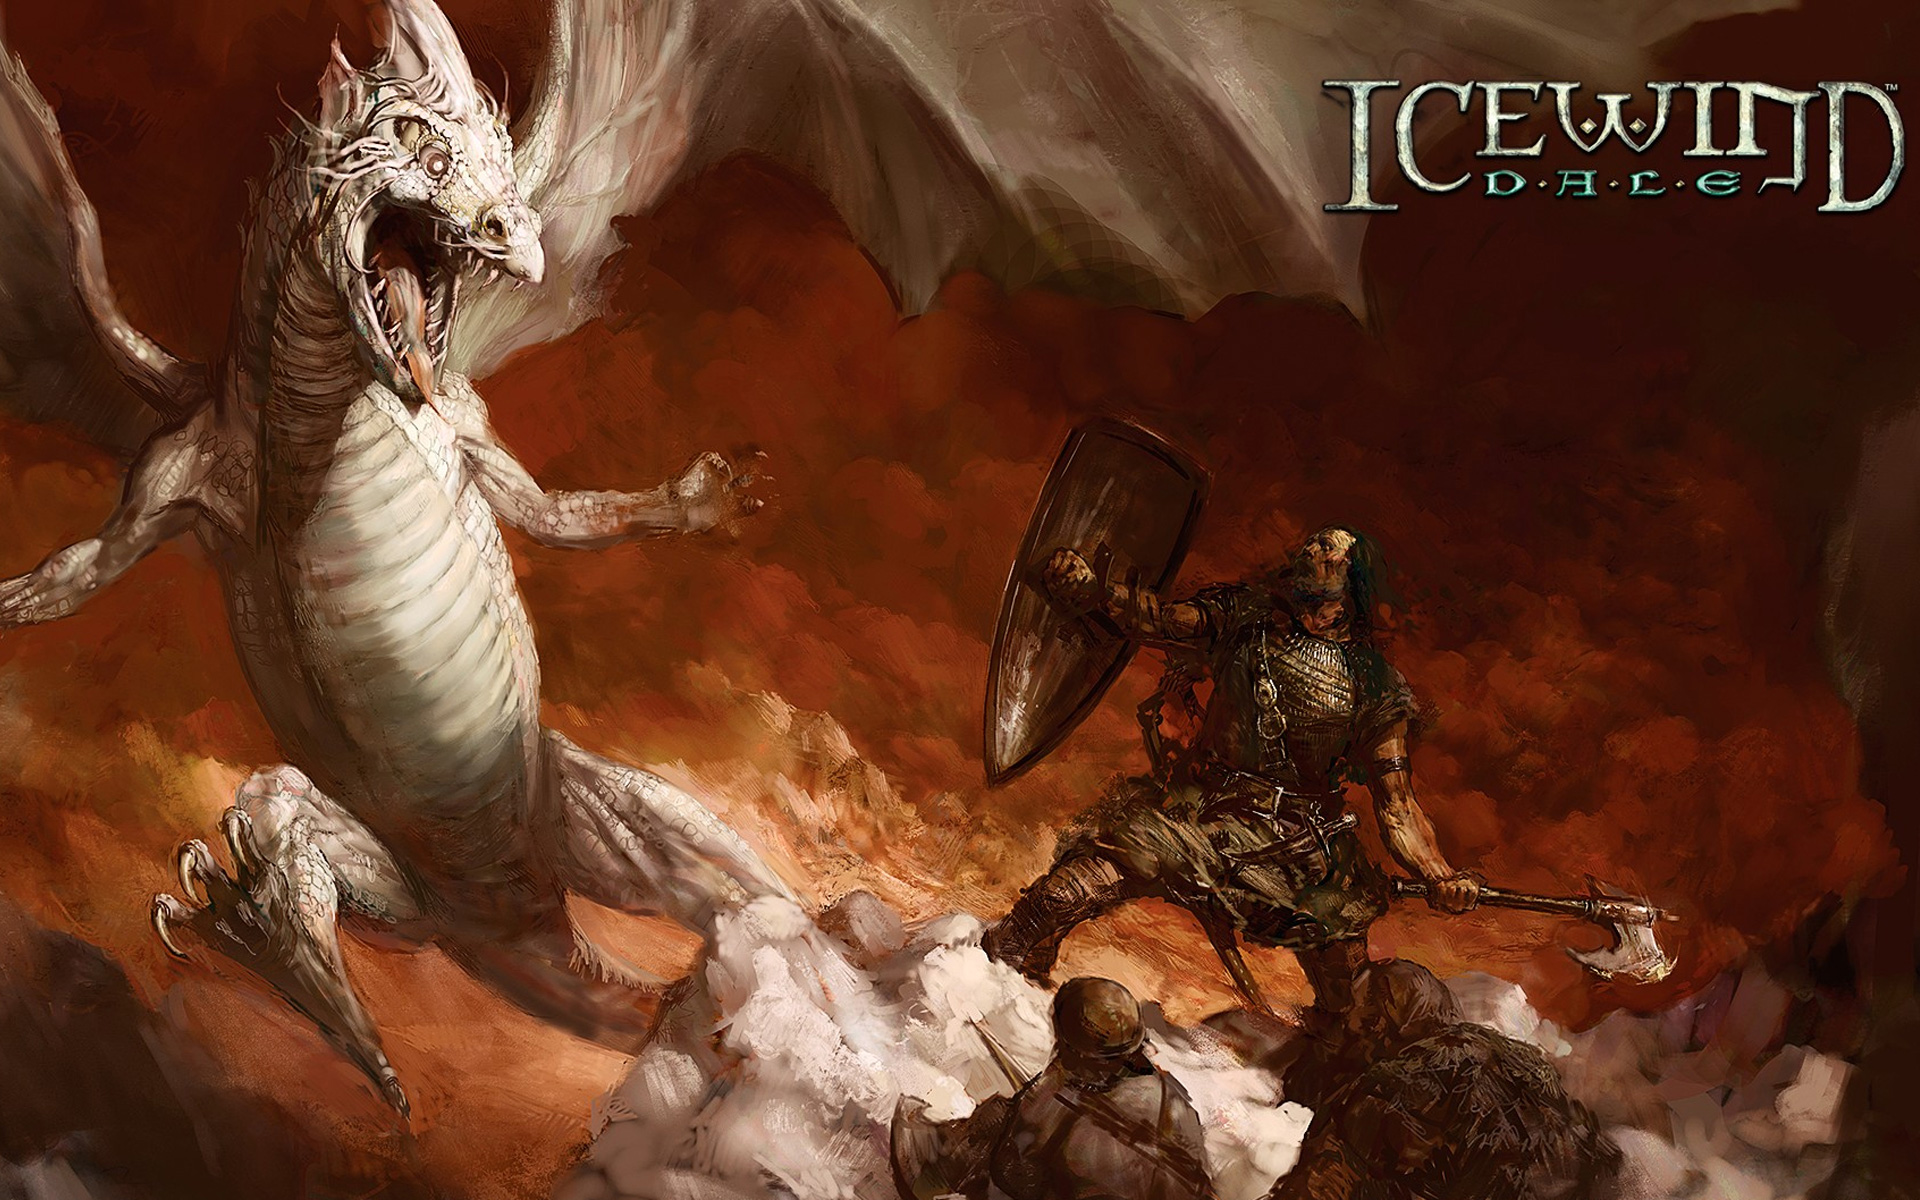 Free Icewind Dale Wallpaper in 1920x1200